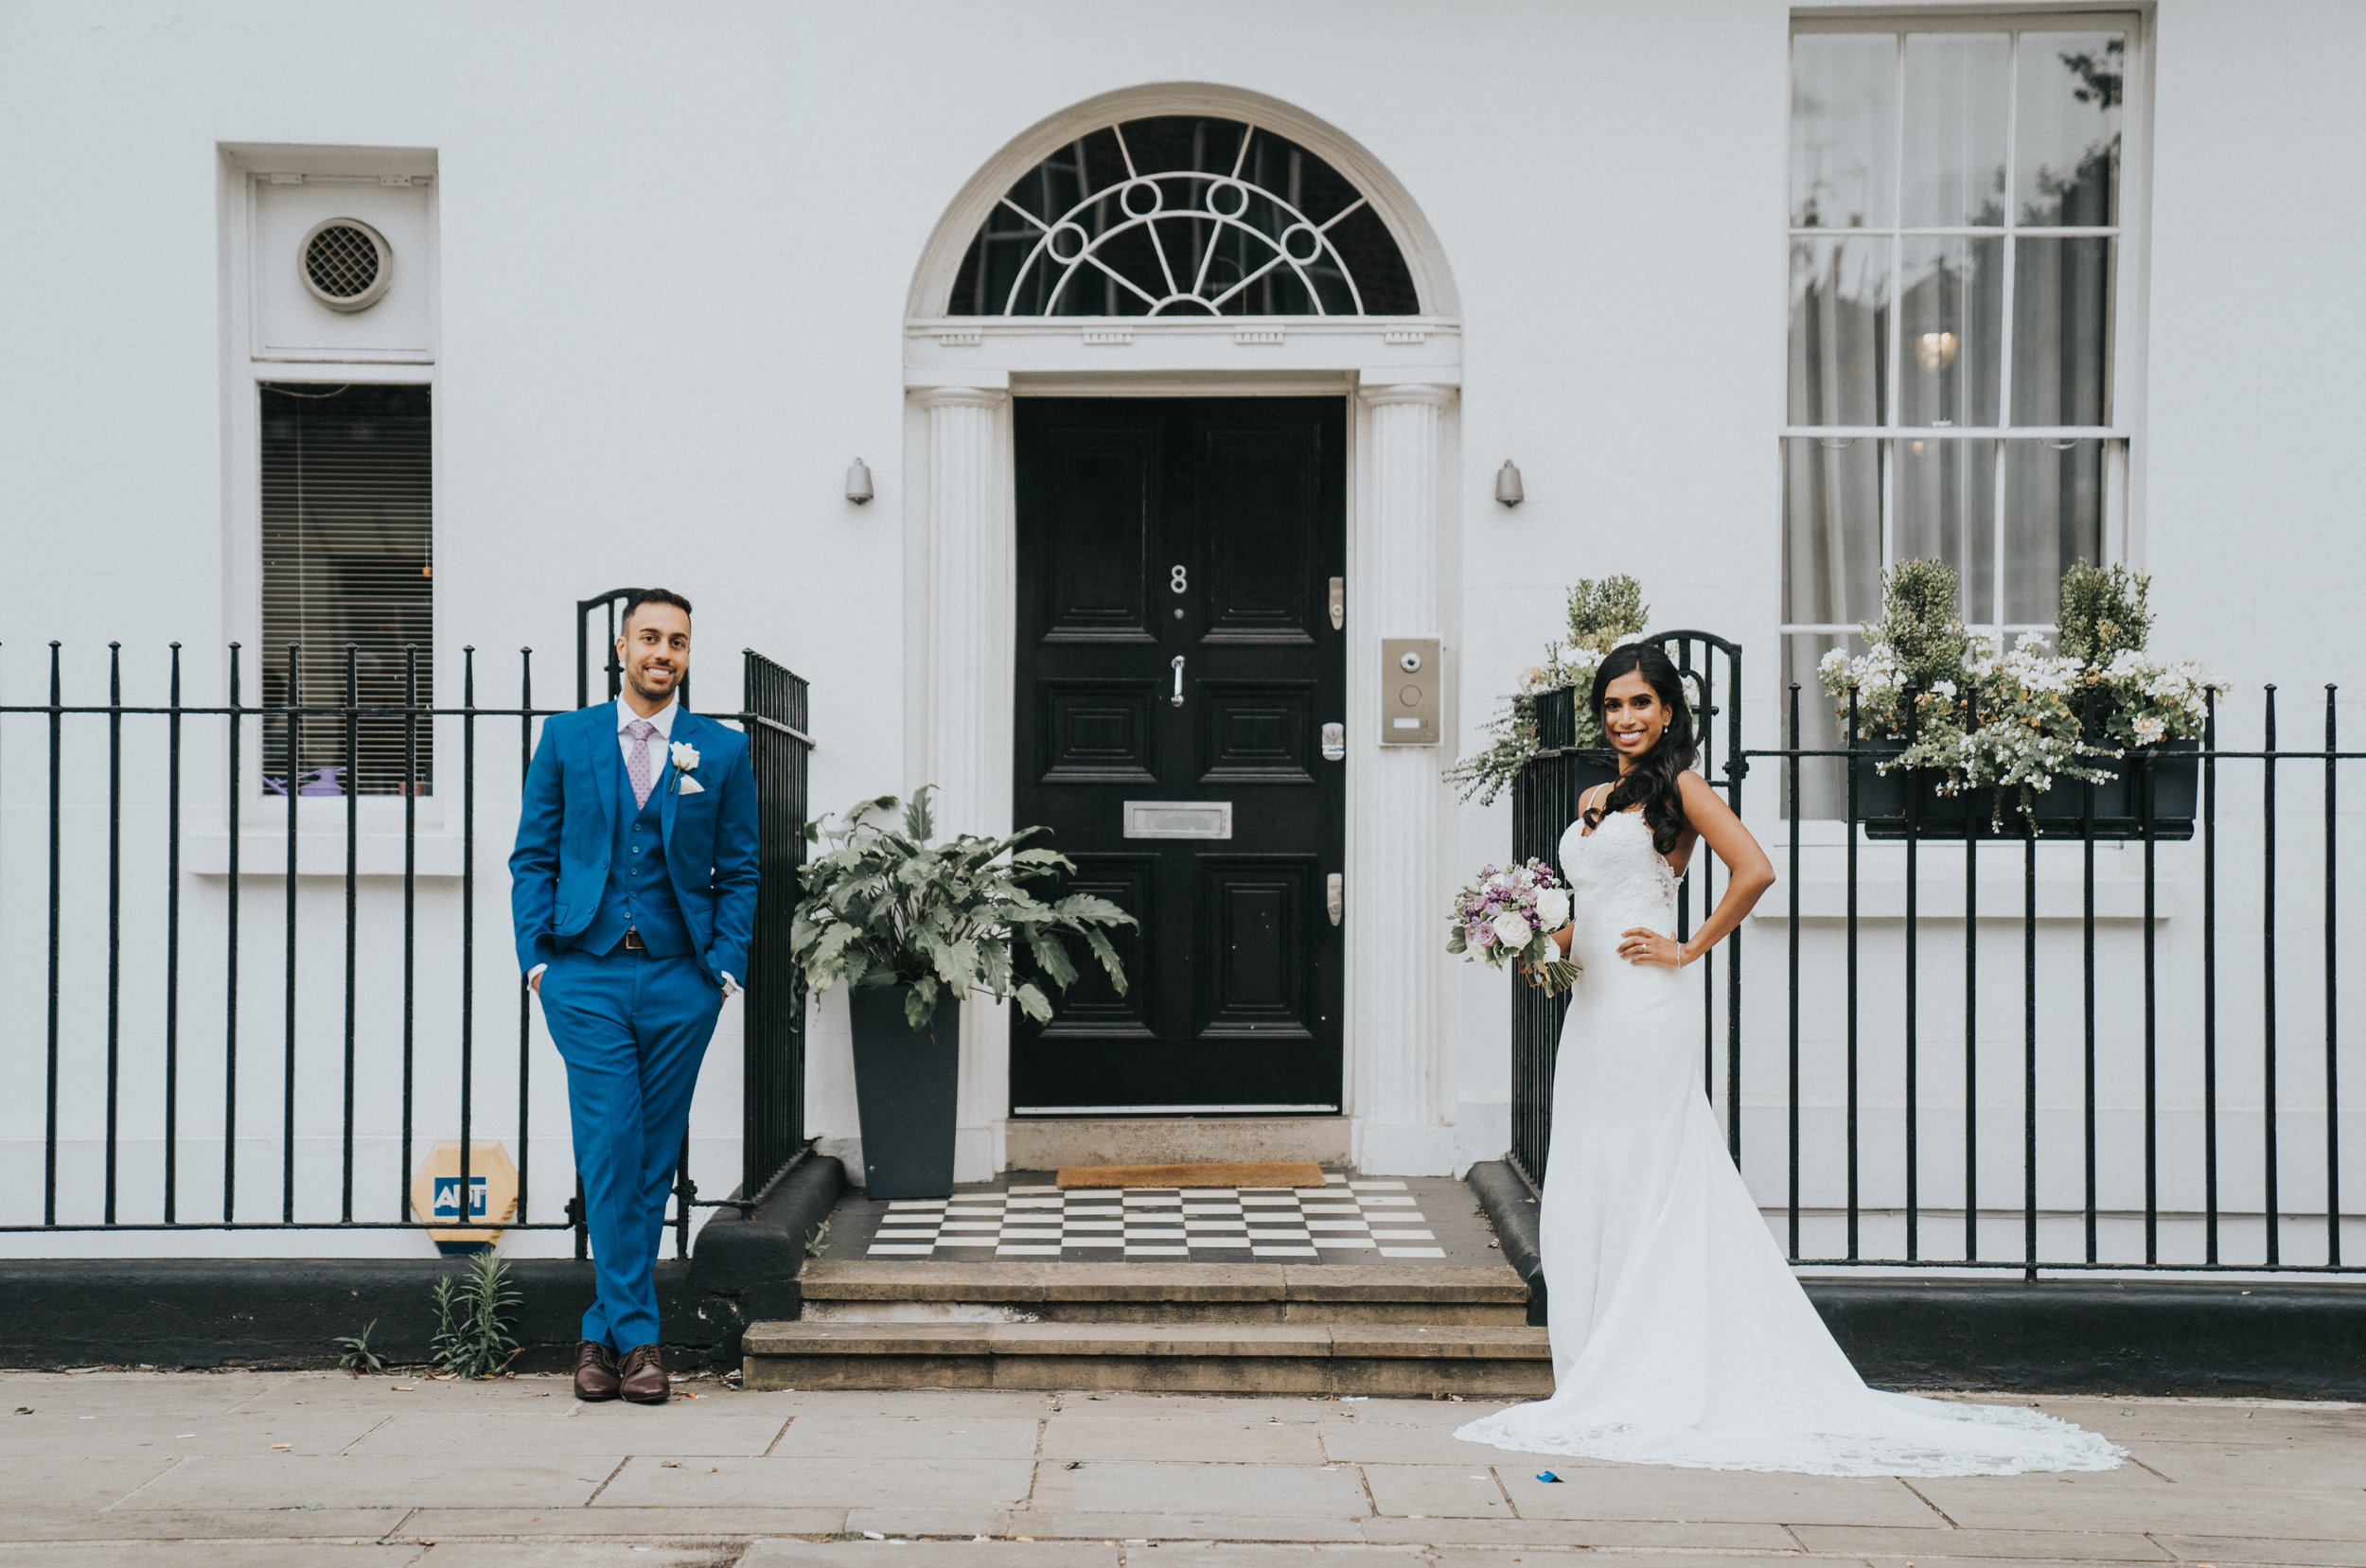 anglo-asian-hindu-civil-wedding-photography-videography-london-portrait-marylebone-old-town-hall-59